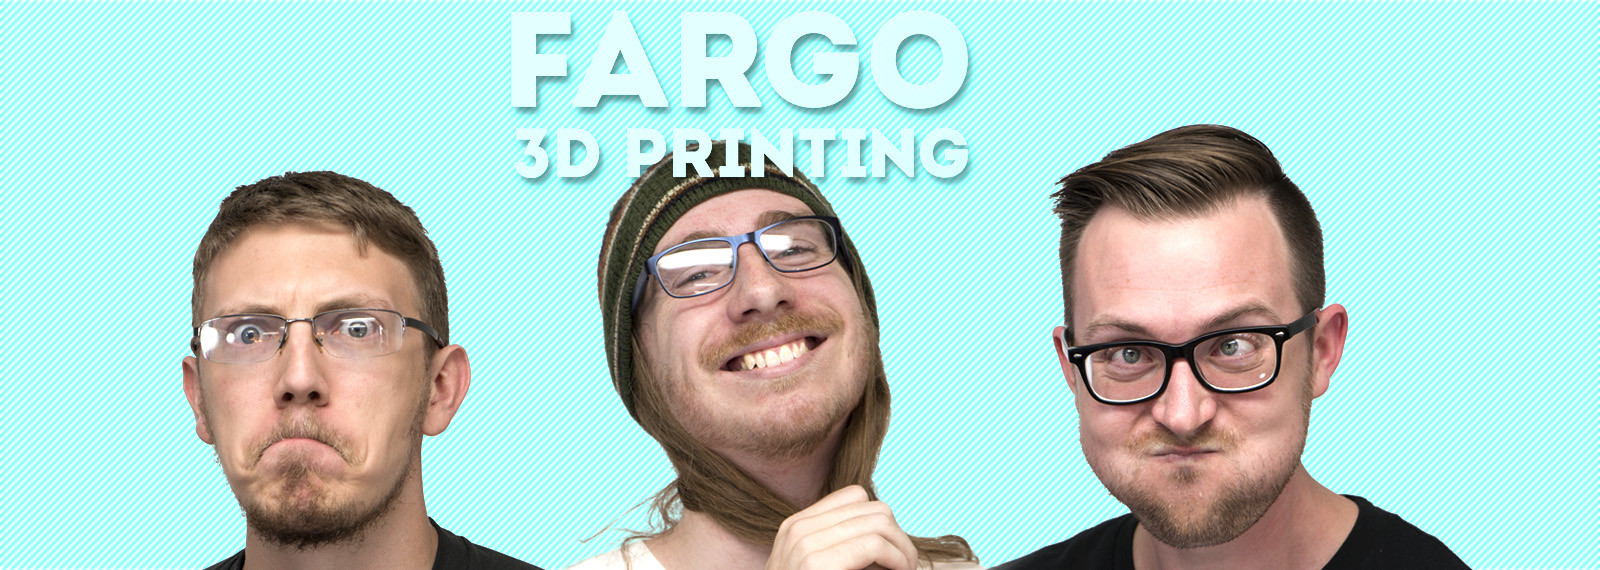 3D Printing Podcast - The Fargo 3D Printing Show